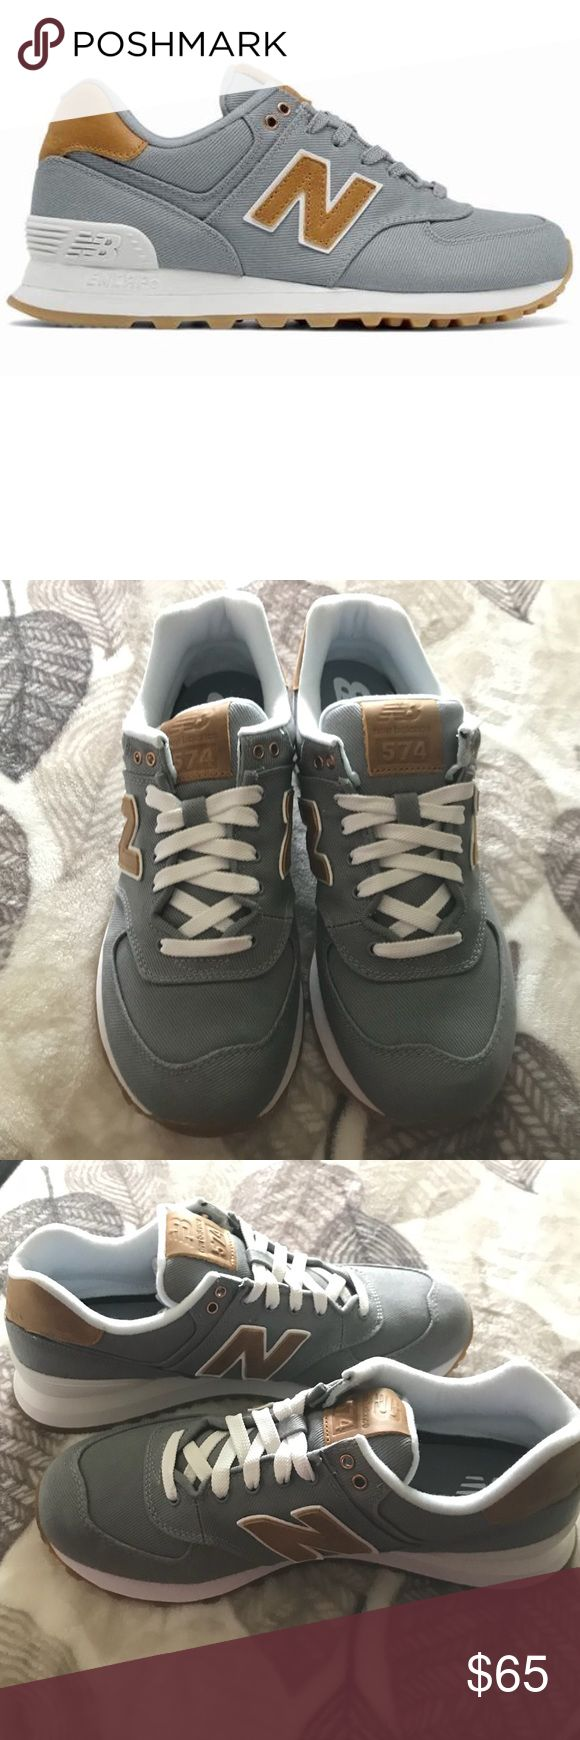 Women's New Balance 574 Grey New with box. Canvas upper. Leather details. New Balance Shoes Sneakers